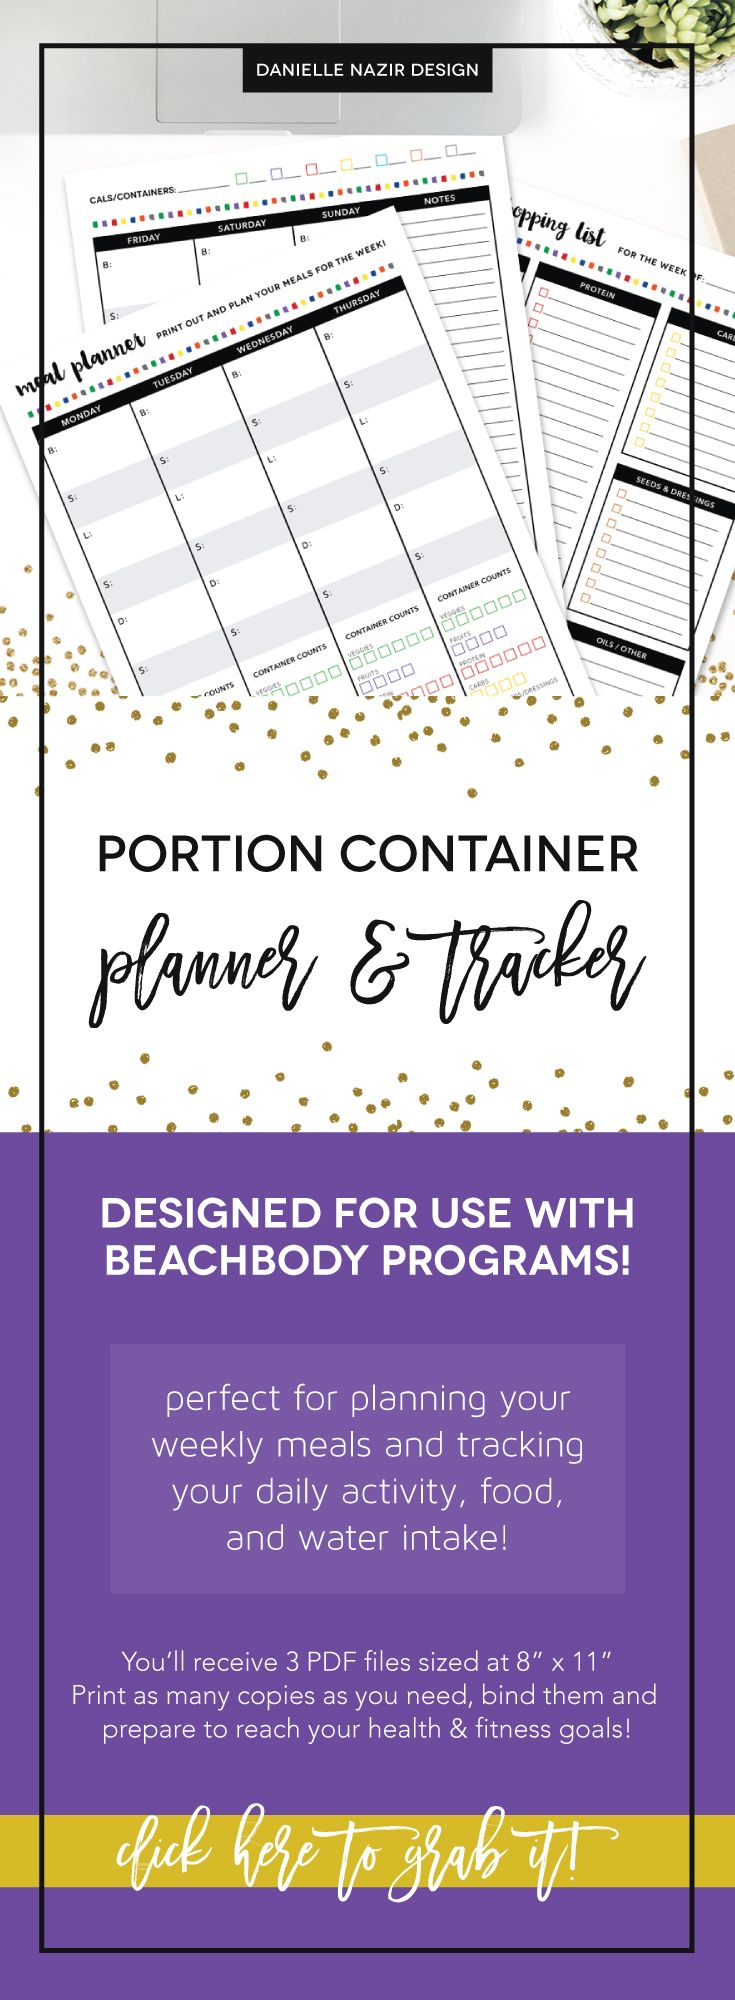 """Portion control container planner & tracker! Perfect tool to plan your weekly meals and track your daily nutrition. You'll receive 3 PDF files (8"""" x 11"""") - Weekly Meal Planner, Grocery Shopping List & Daily Food Tracker. // 21 Day Fix Tracker // Core de Force Tracker // Beachbody Tracker // Nutrition Tracker // Meal Planner // Food Log // Portion Container Tracker // Colored Container Tracker // Nutrition Planner // Nutrition Tracker"""